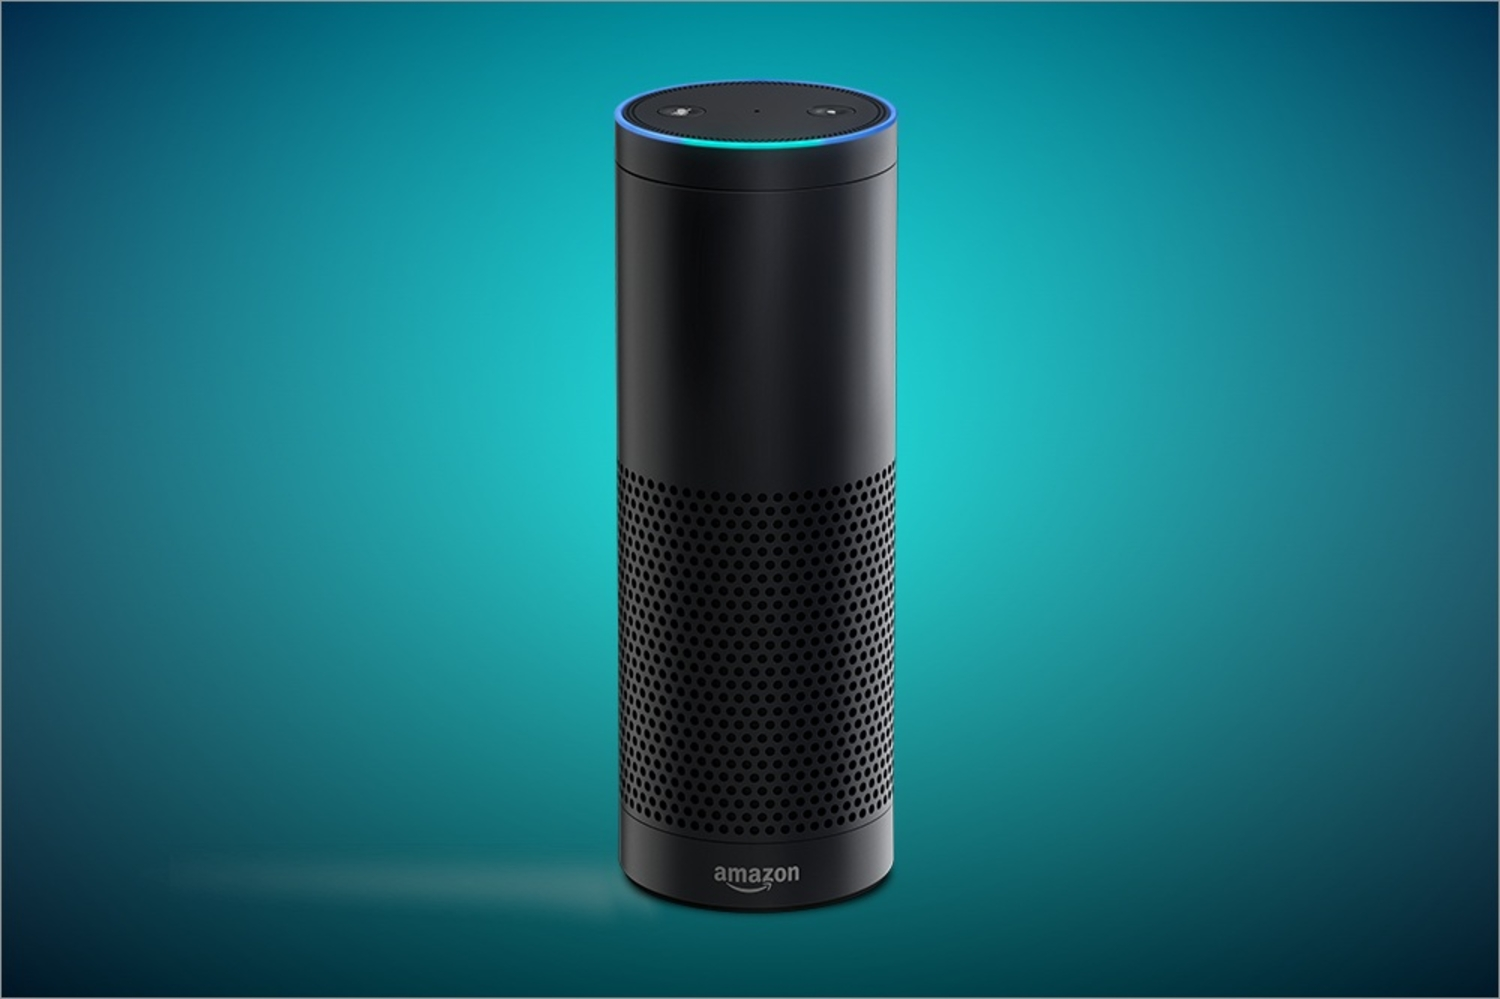 amazon echo s alexa is your holiday shopping hero smart. Black Bedroom Furniture Sets. Home Design Ideas